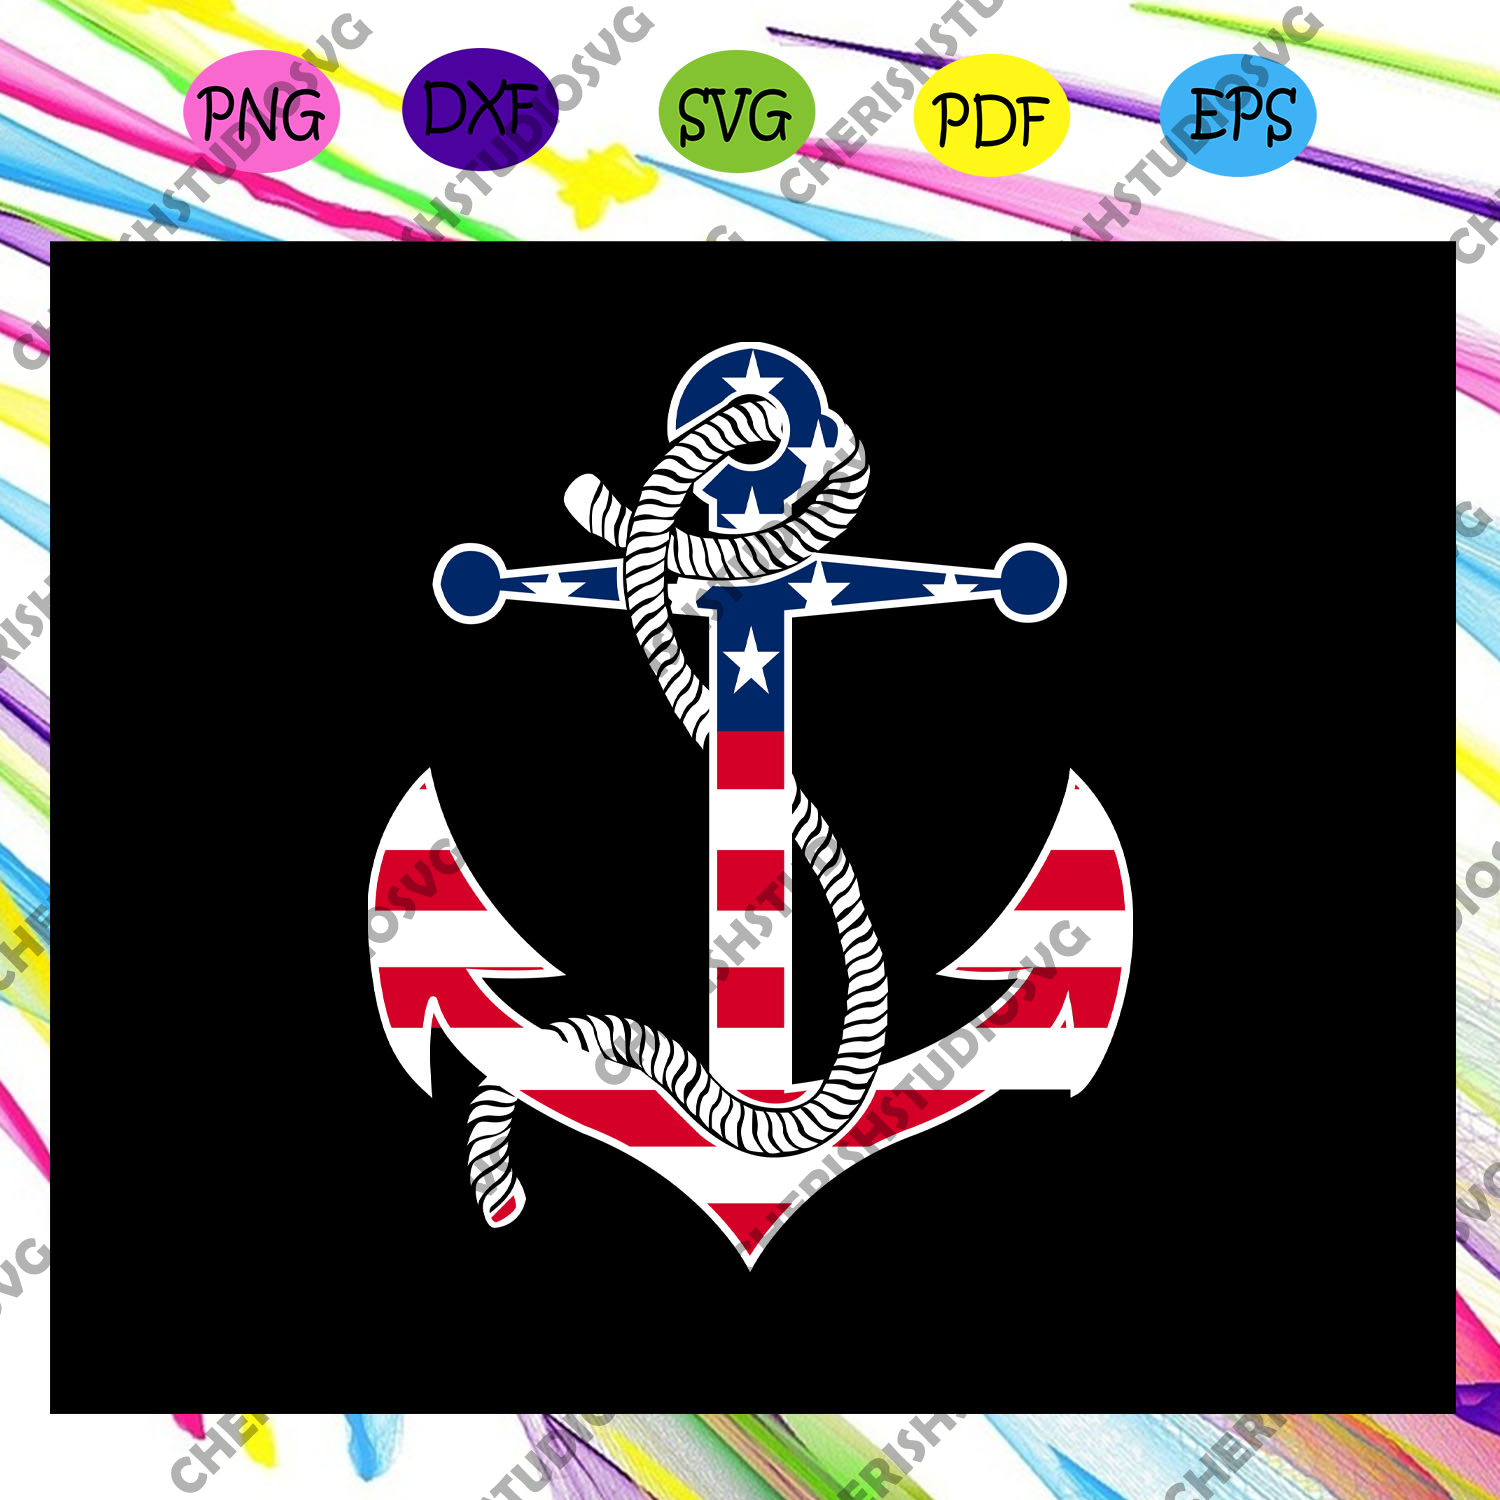 Anchor independence america flag, anchor svg, anchor shirt,independence day svg,4th of july,funny 4th of july,america flag,4th july gift,independence gift,america flag For Silhouette, Files For Cricut, SVG, DXF, EPS, PNG Instant Download